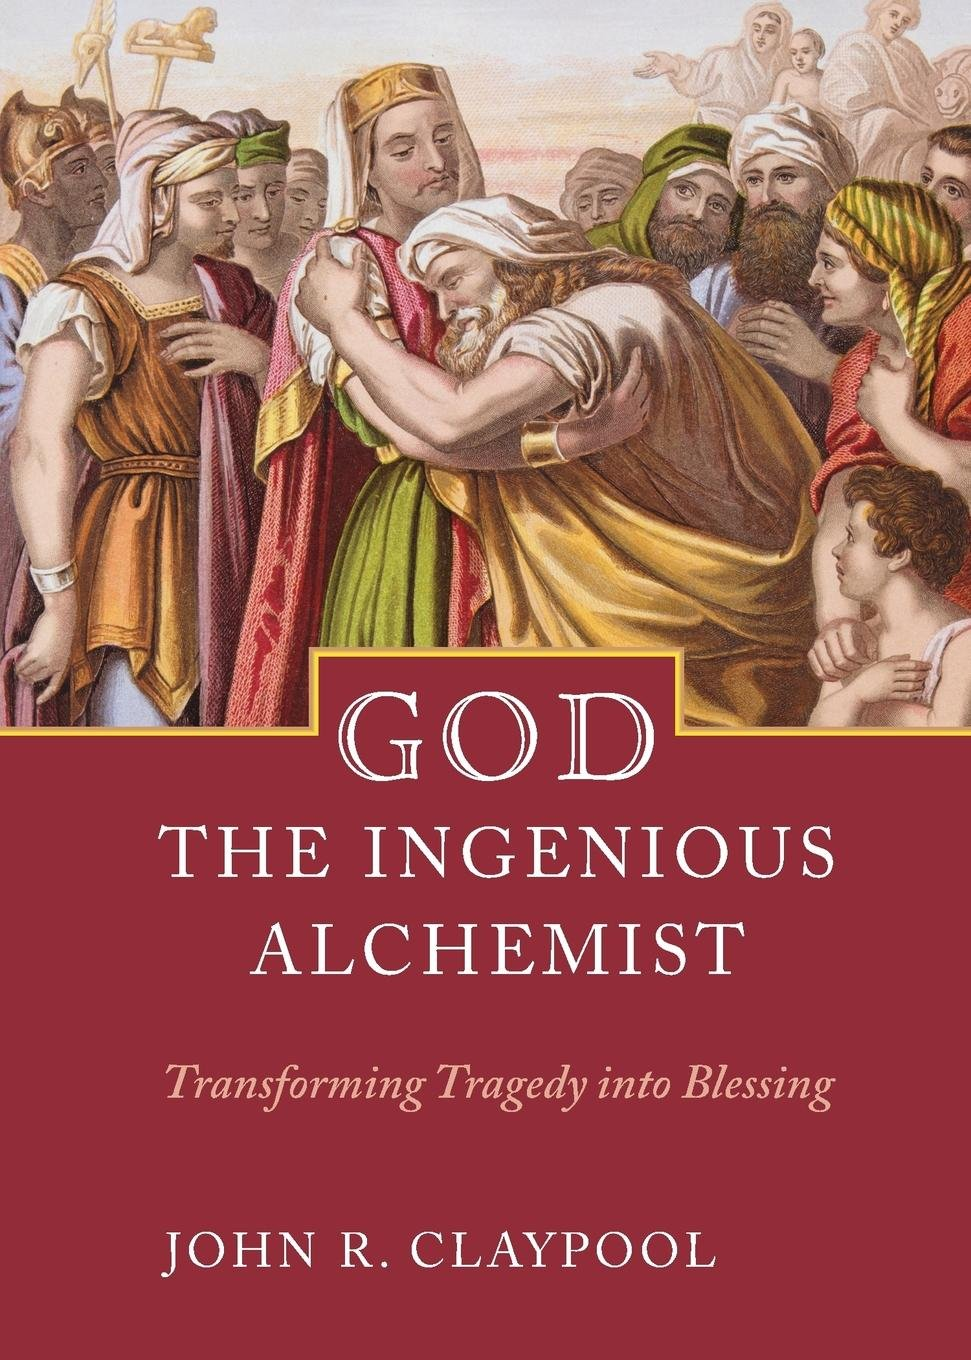 God the Ingenious Alchemist: Transforming Tragedy Into Blessing pdf